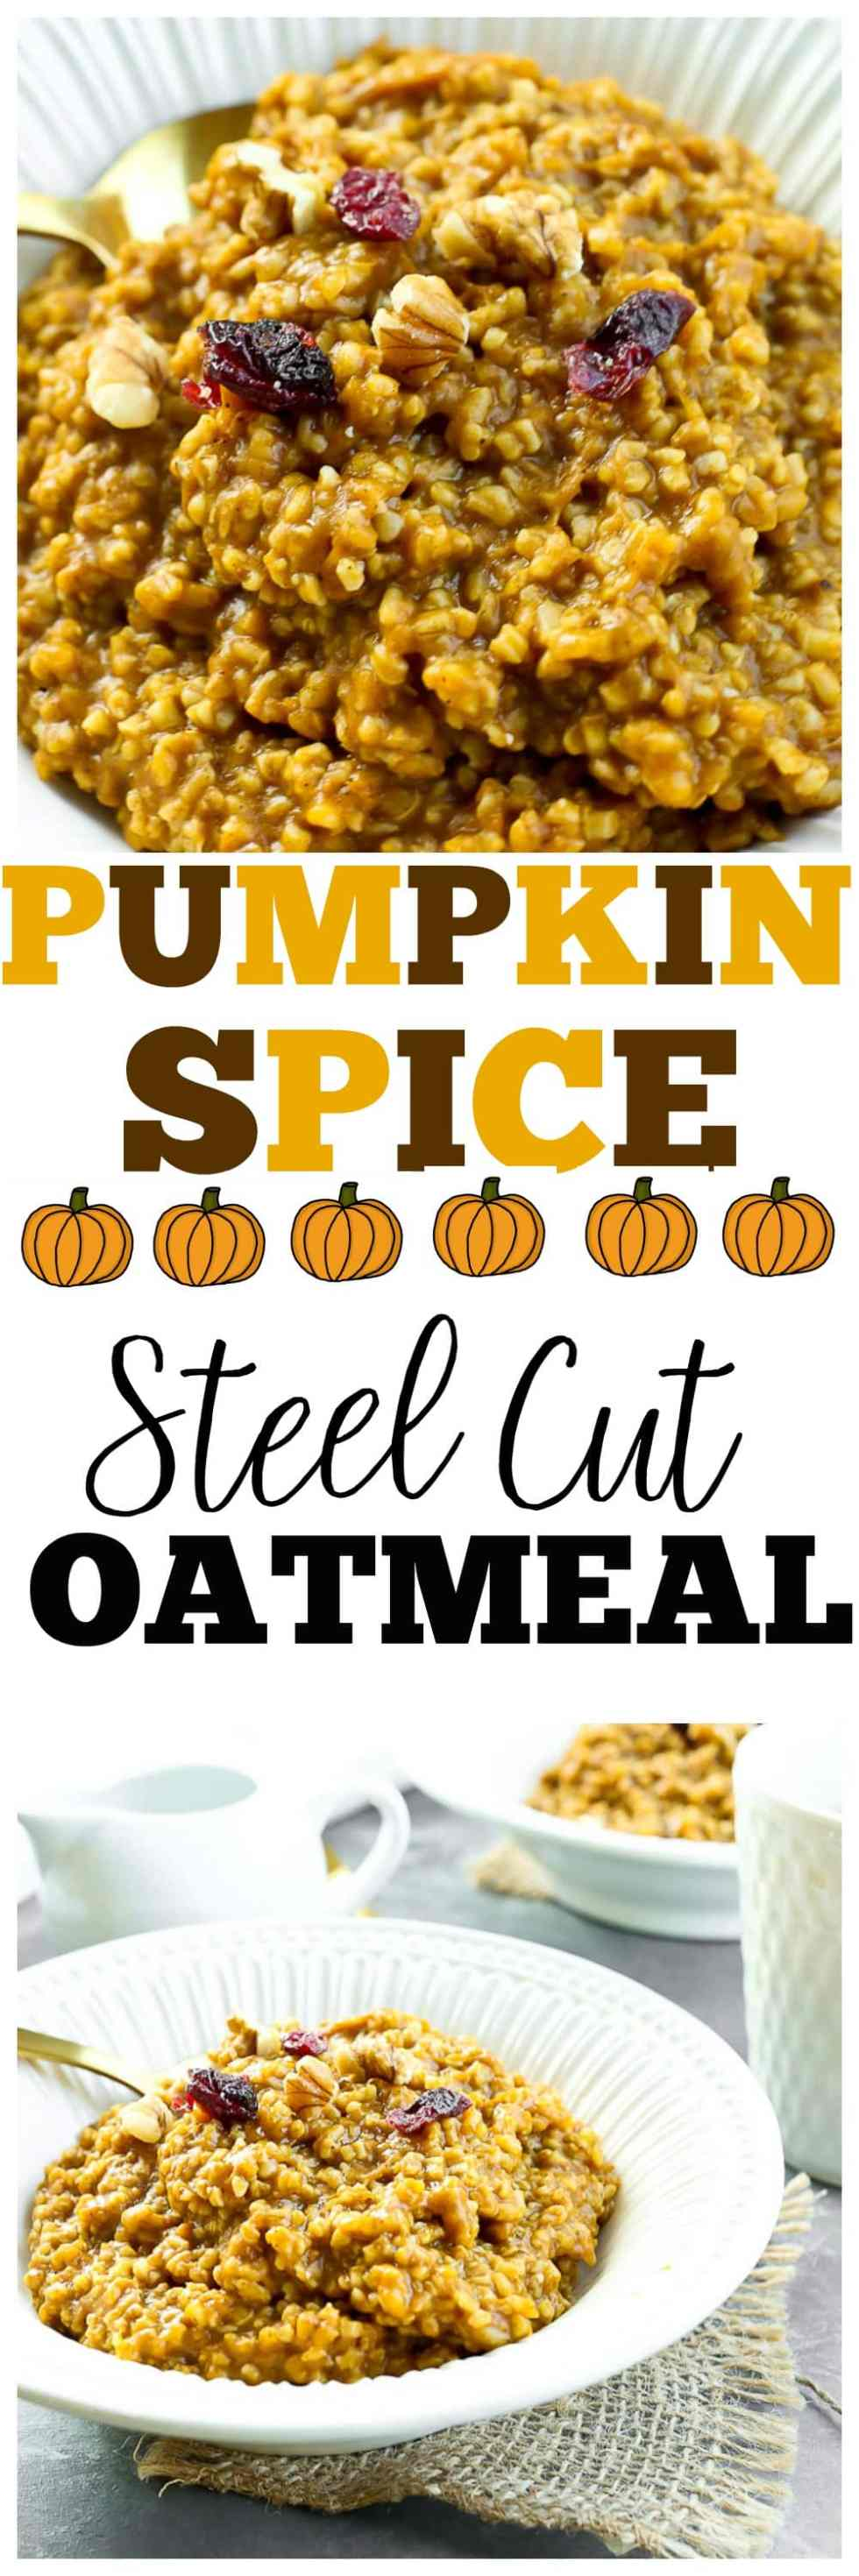 Pumpkin Spice Steel Cut Oatmeal recipe. #glutenfree #healthy #breakfast #ideas #vegan #realfood